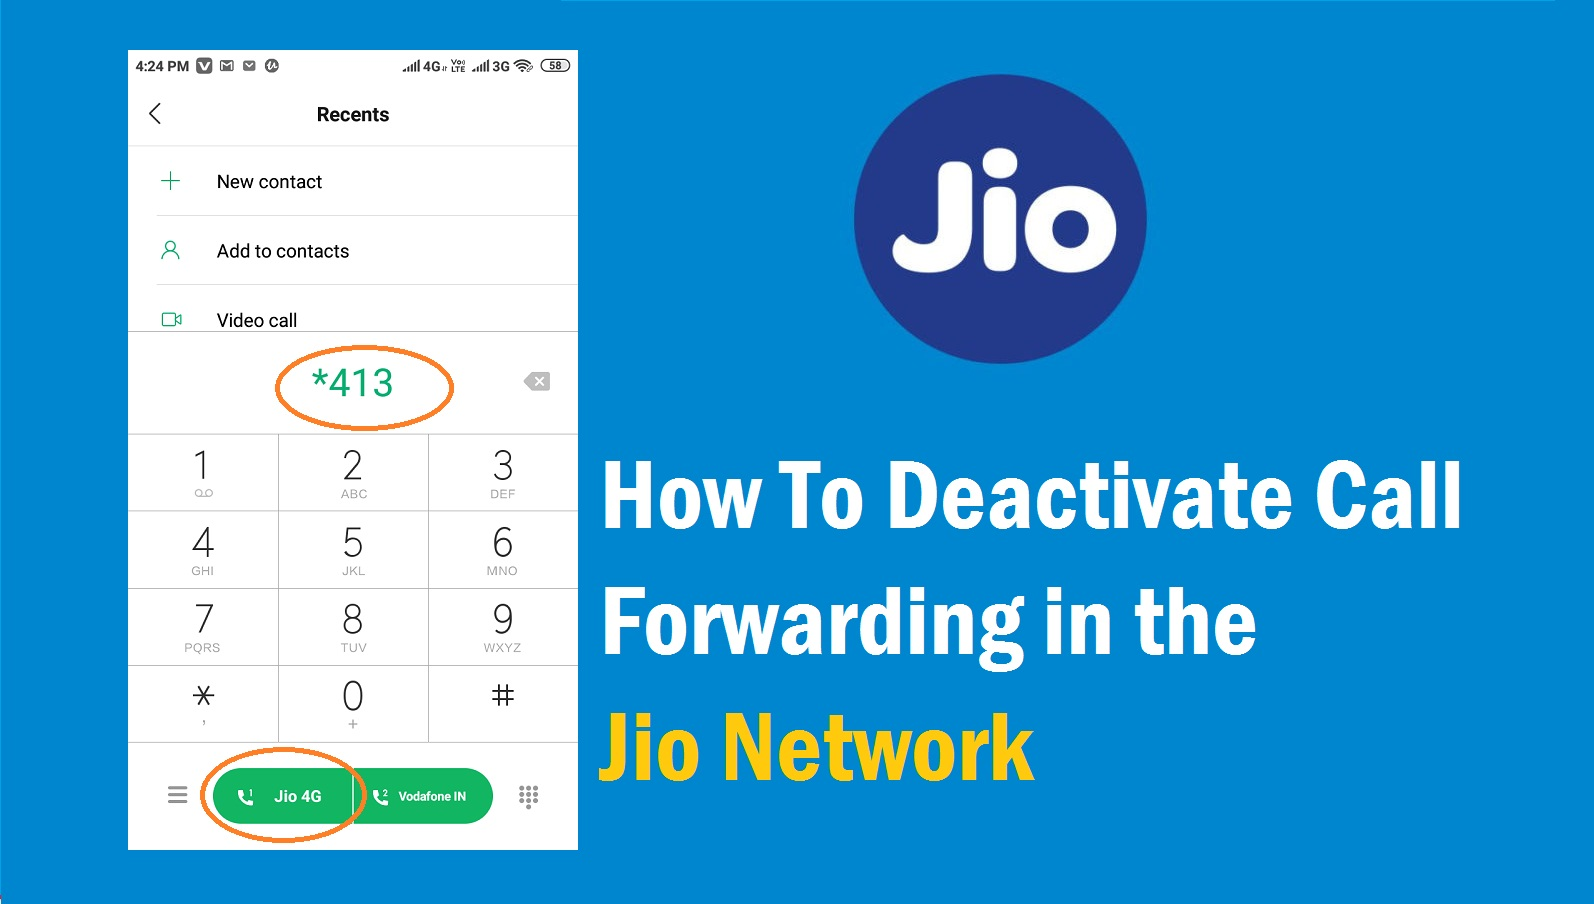 How to deactivate call forwarding in the Jio network